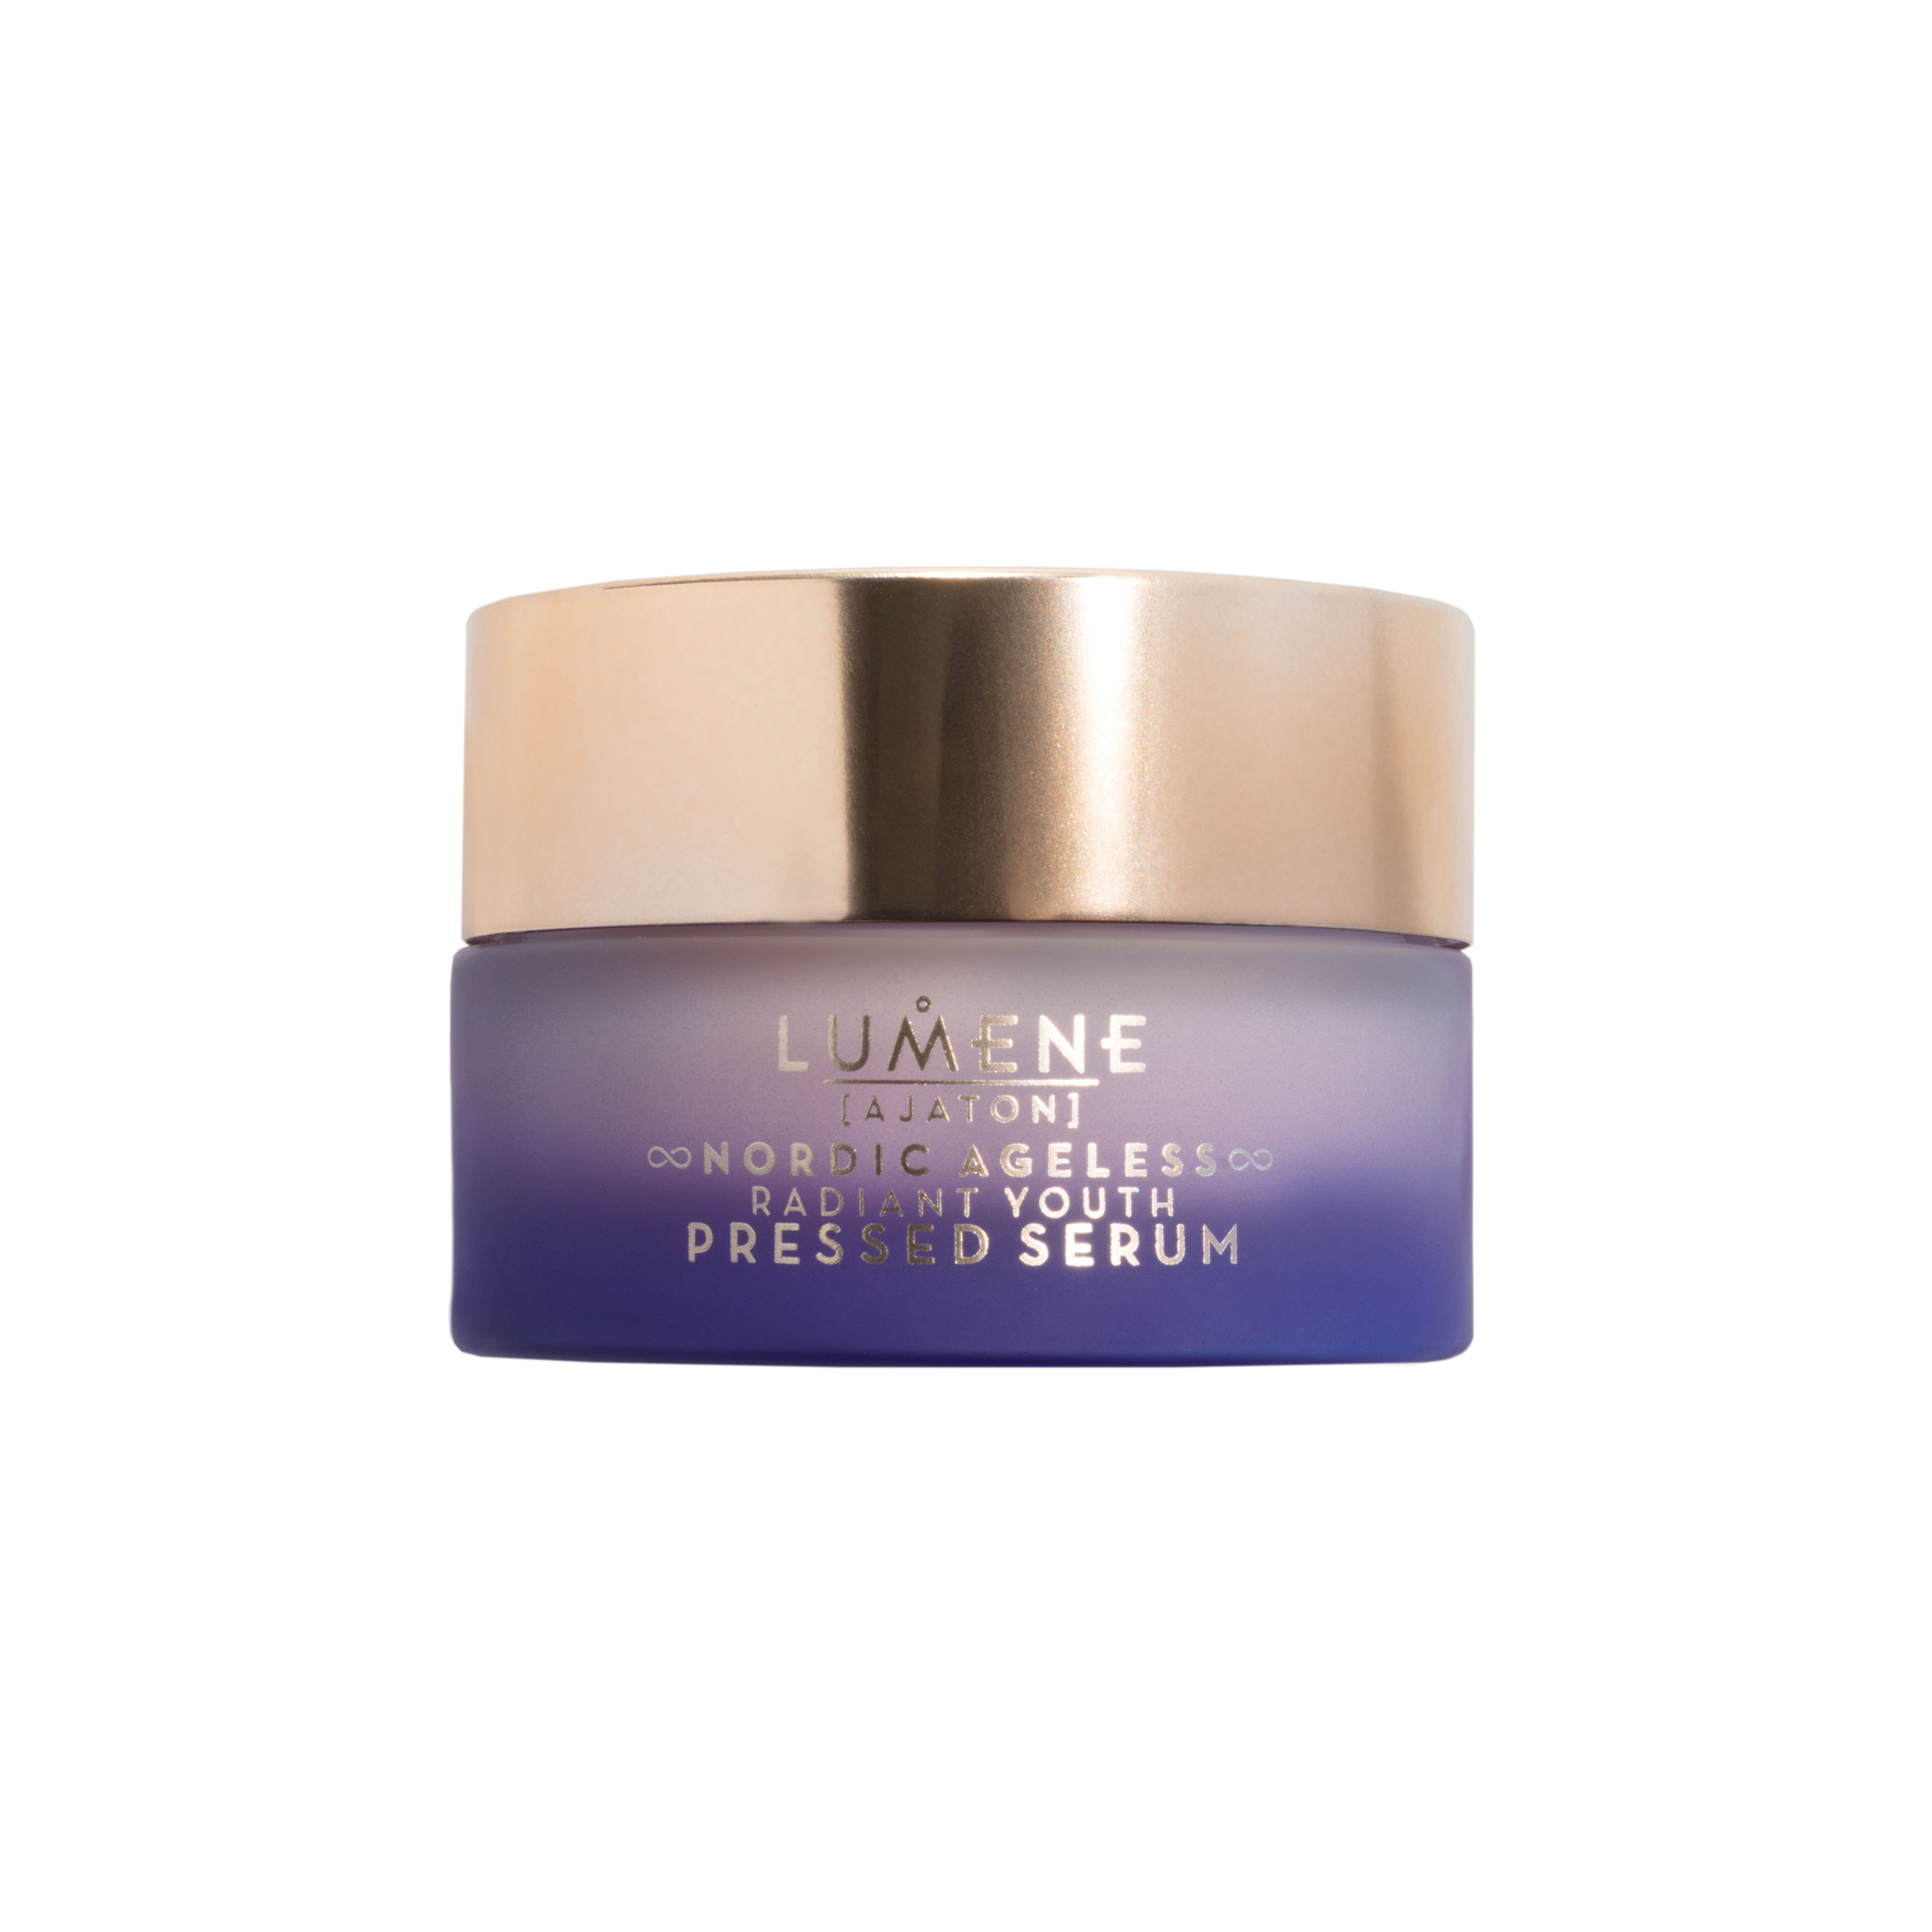 Ajaton NORDIC AGELESS Radiant Youth Pressed Serum Nordic Ageless Radiant Youth Pressed Serum